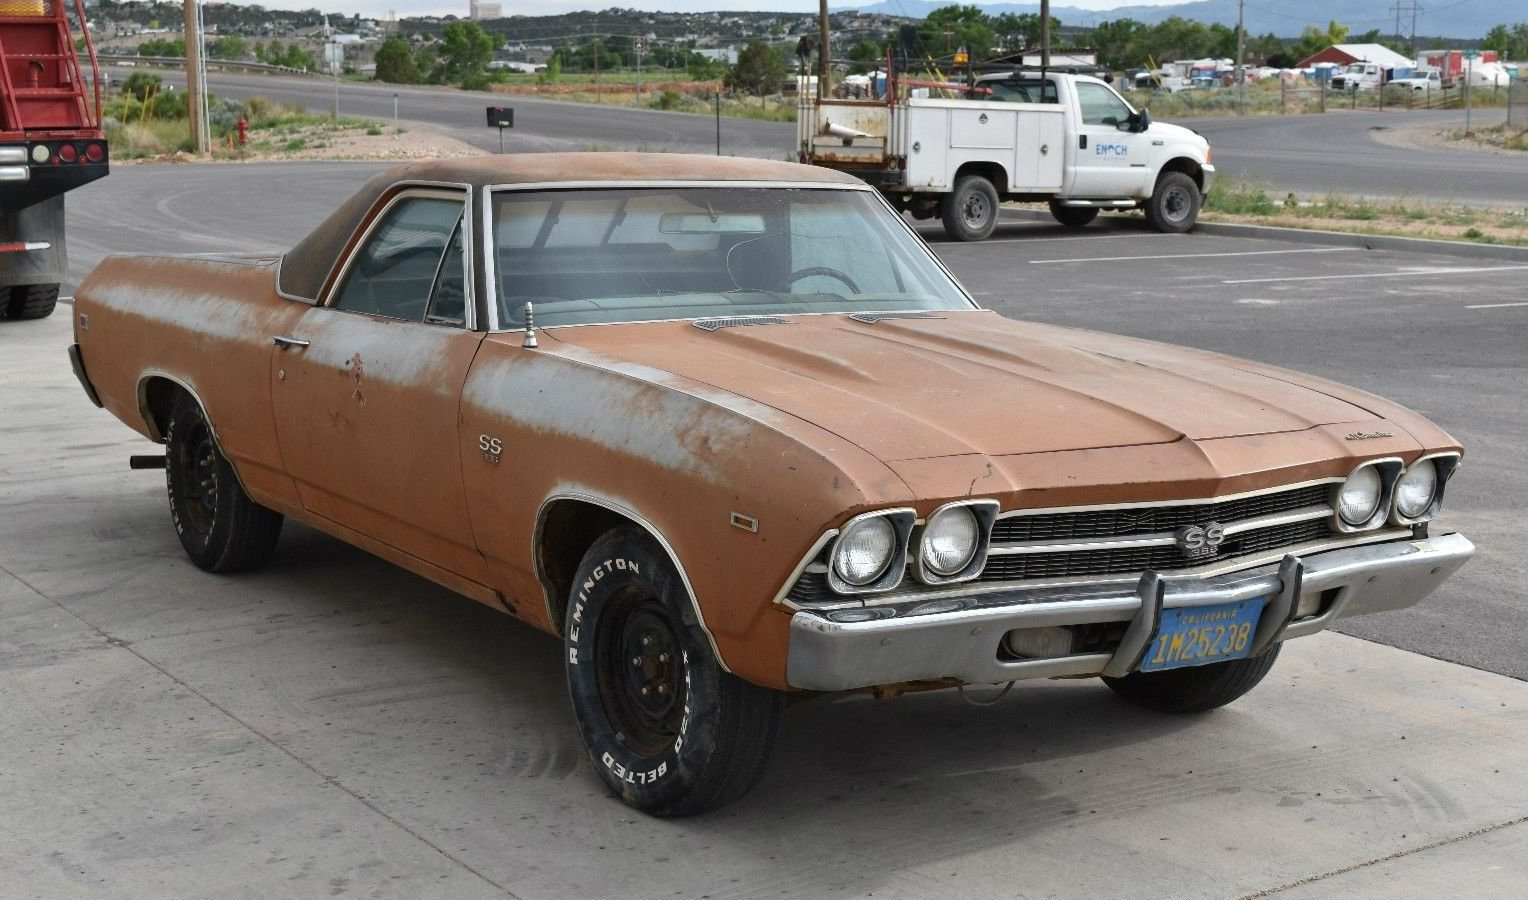 Chevrolet Ss 69 >> 27 Years In A Lean-To: 1969 Chevrolet El Camino SS